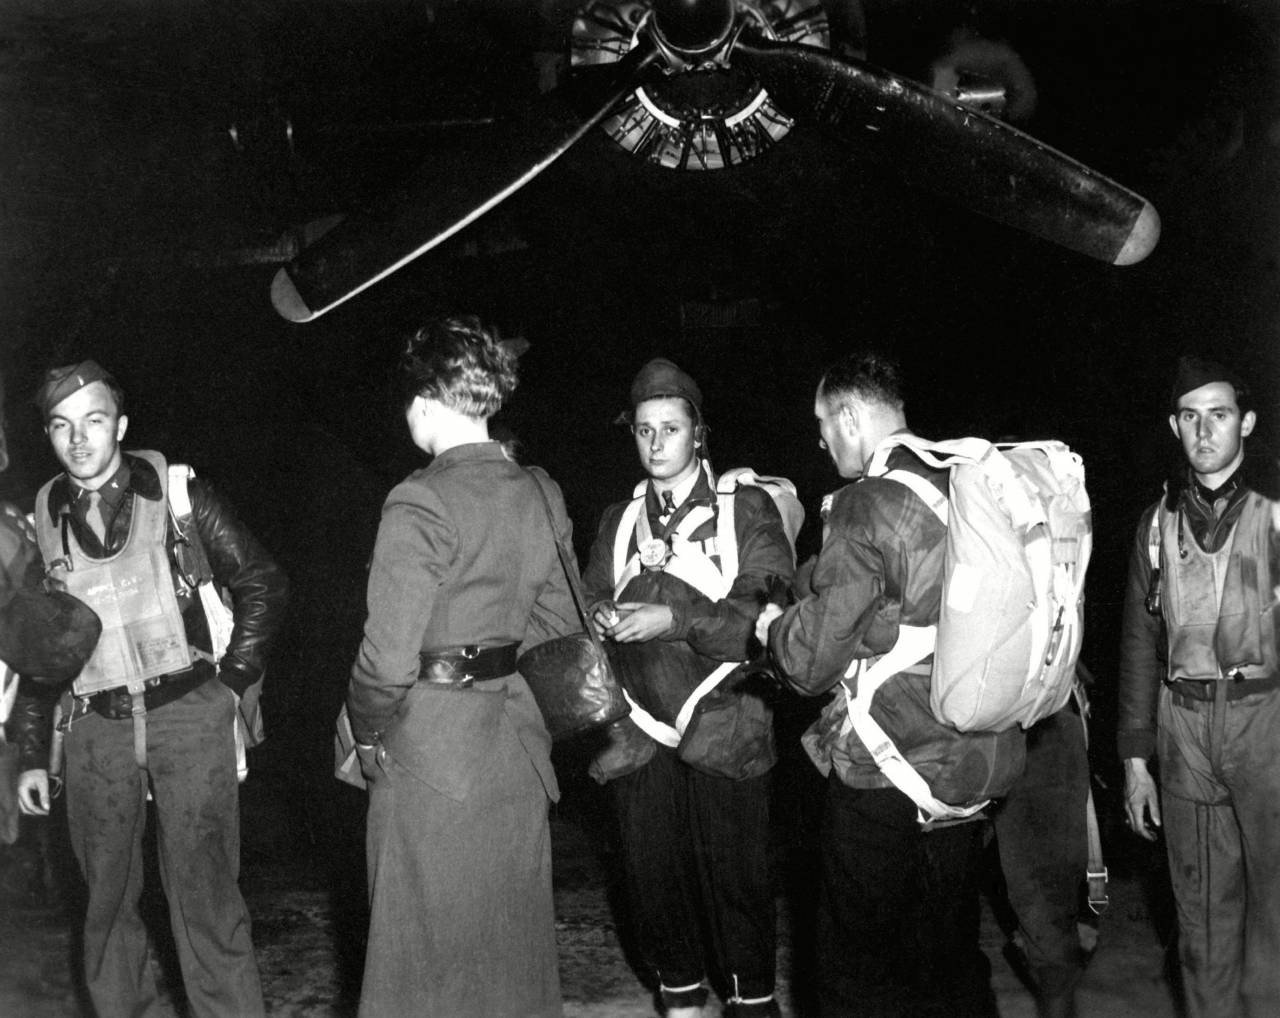 A Jedburgh team by a B-24 from which they would parachute into occupied France. They were among 93 Jedburgh teams who linked French guerrillas and the Allied command during World War 2. Area T. Harrington Airdrome, England, ca. 1944.